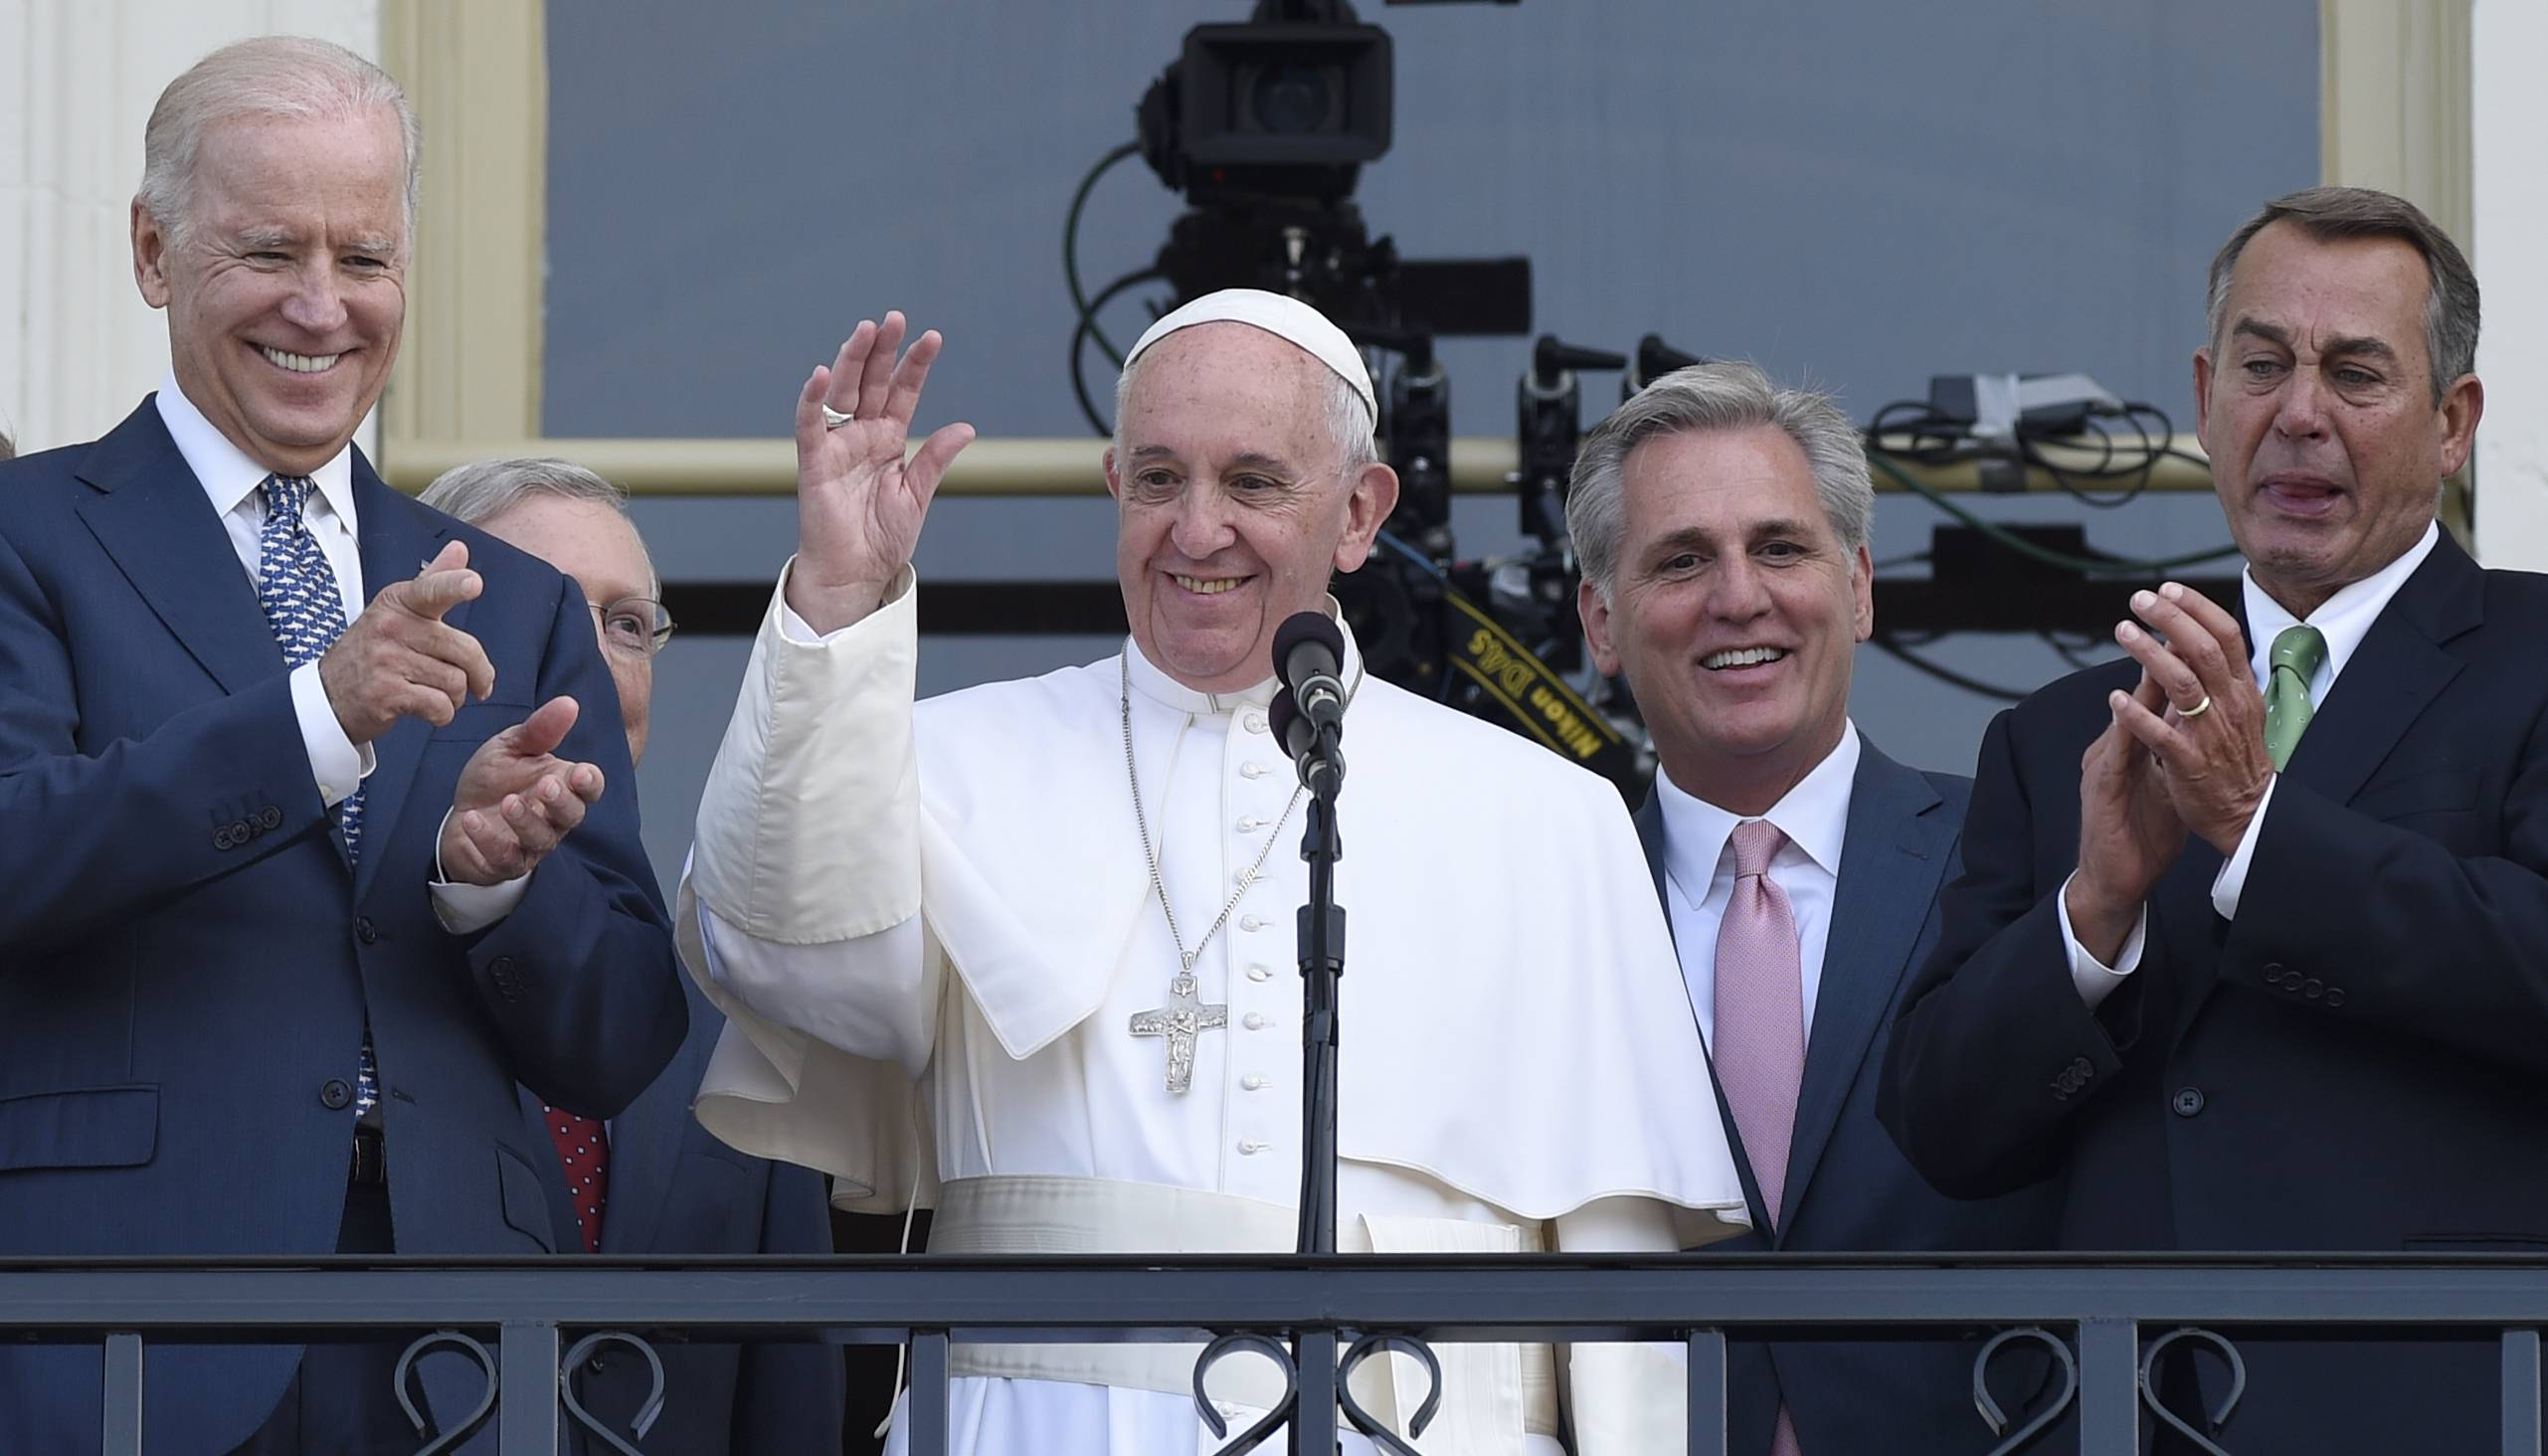 Images: Pope Francis in D.C., Day 2